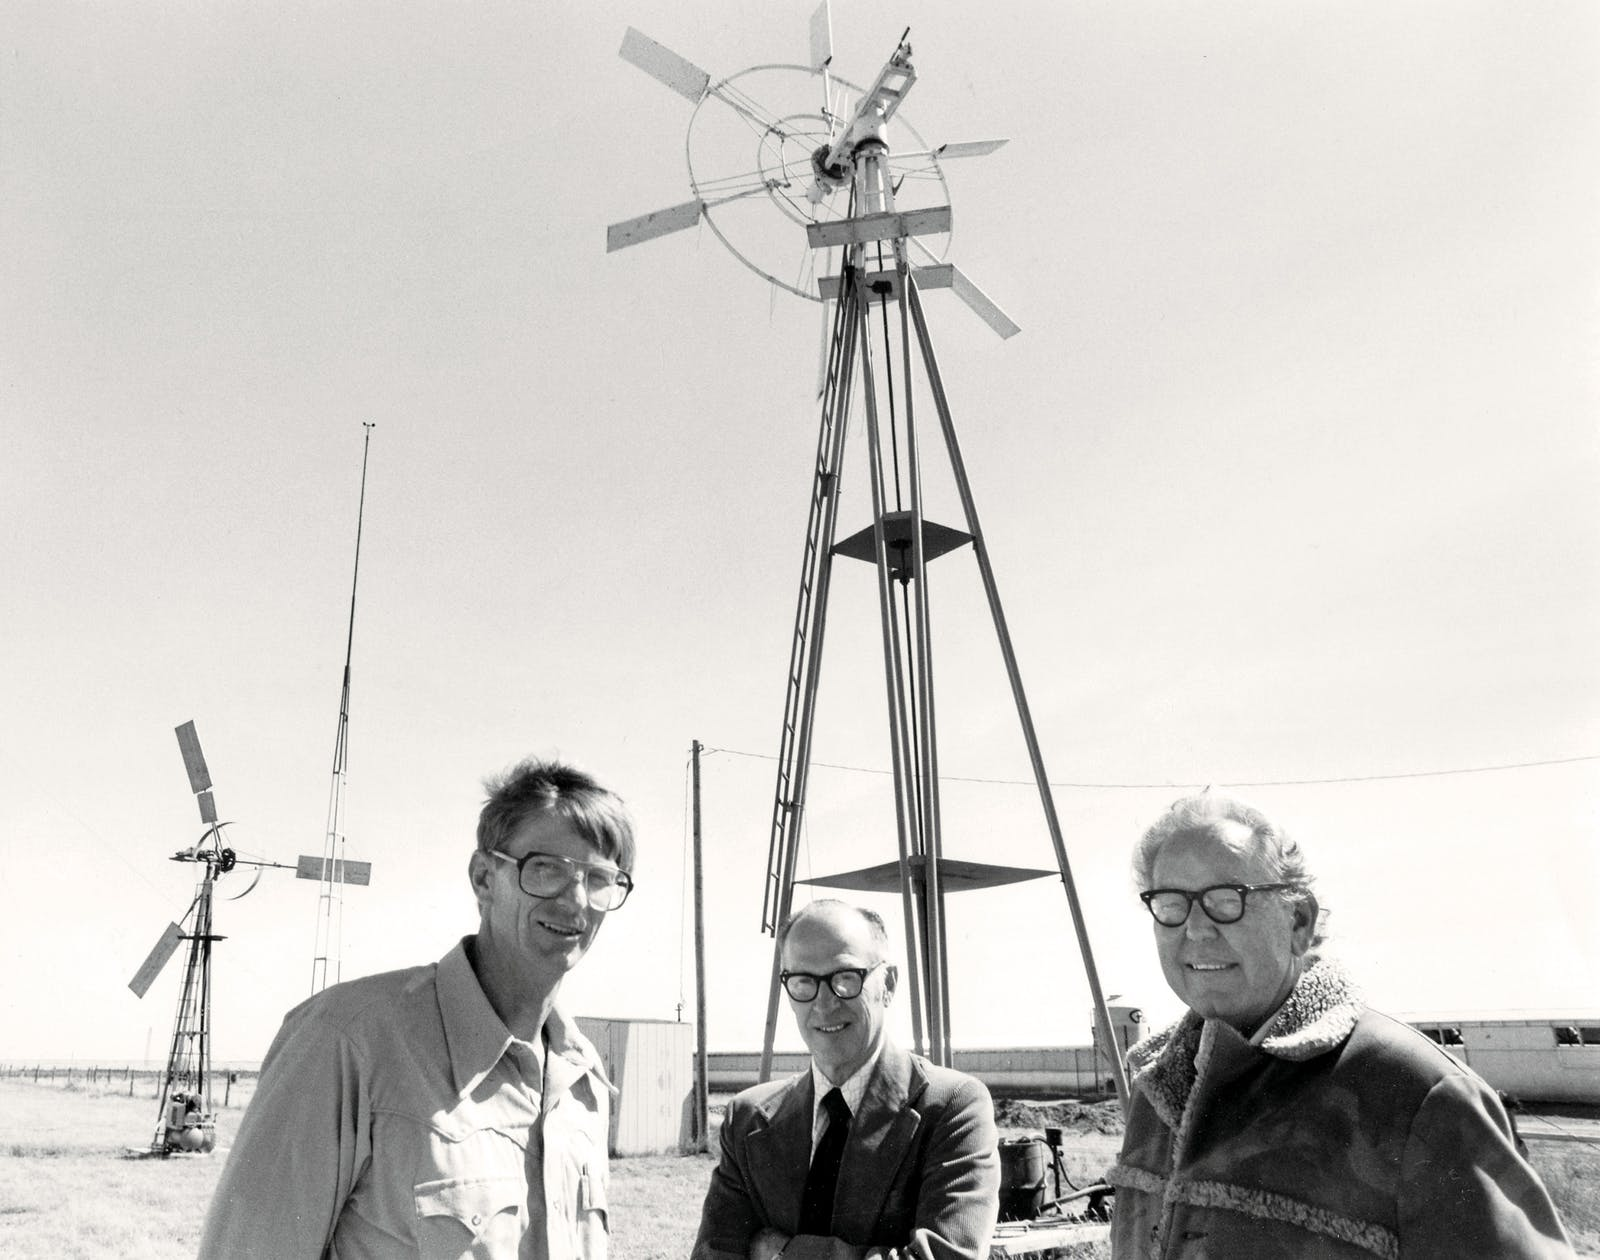 Co-founders Vaughn Nelson, Earl Gilmore, and Robert Barieau in front of the Alternative Energy Institute's Wind Test Center at West Texas State University, in Canyon, in the late seventies.